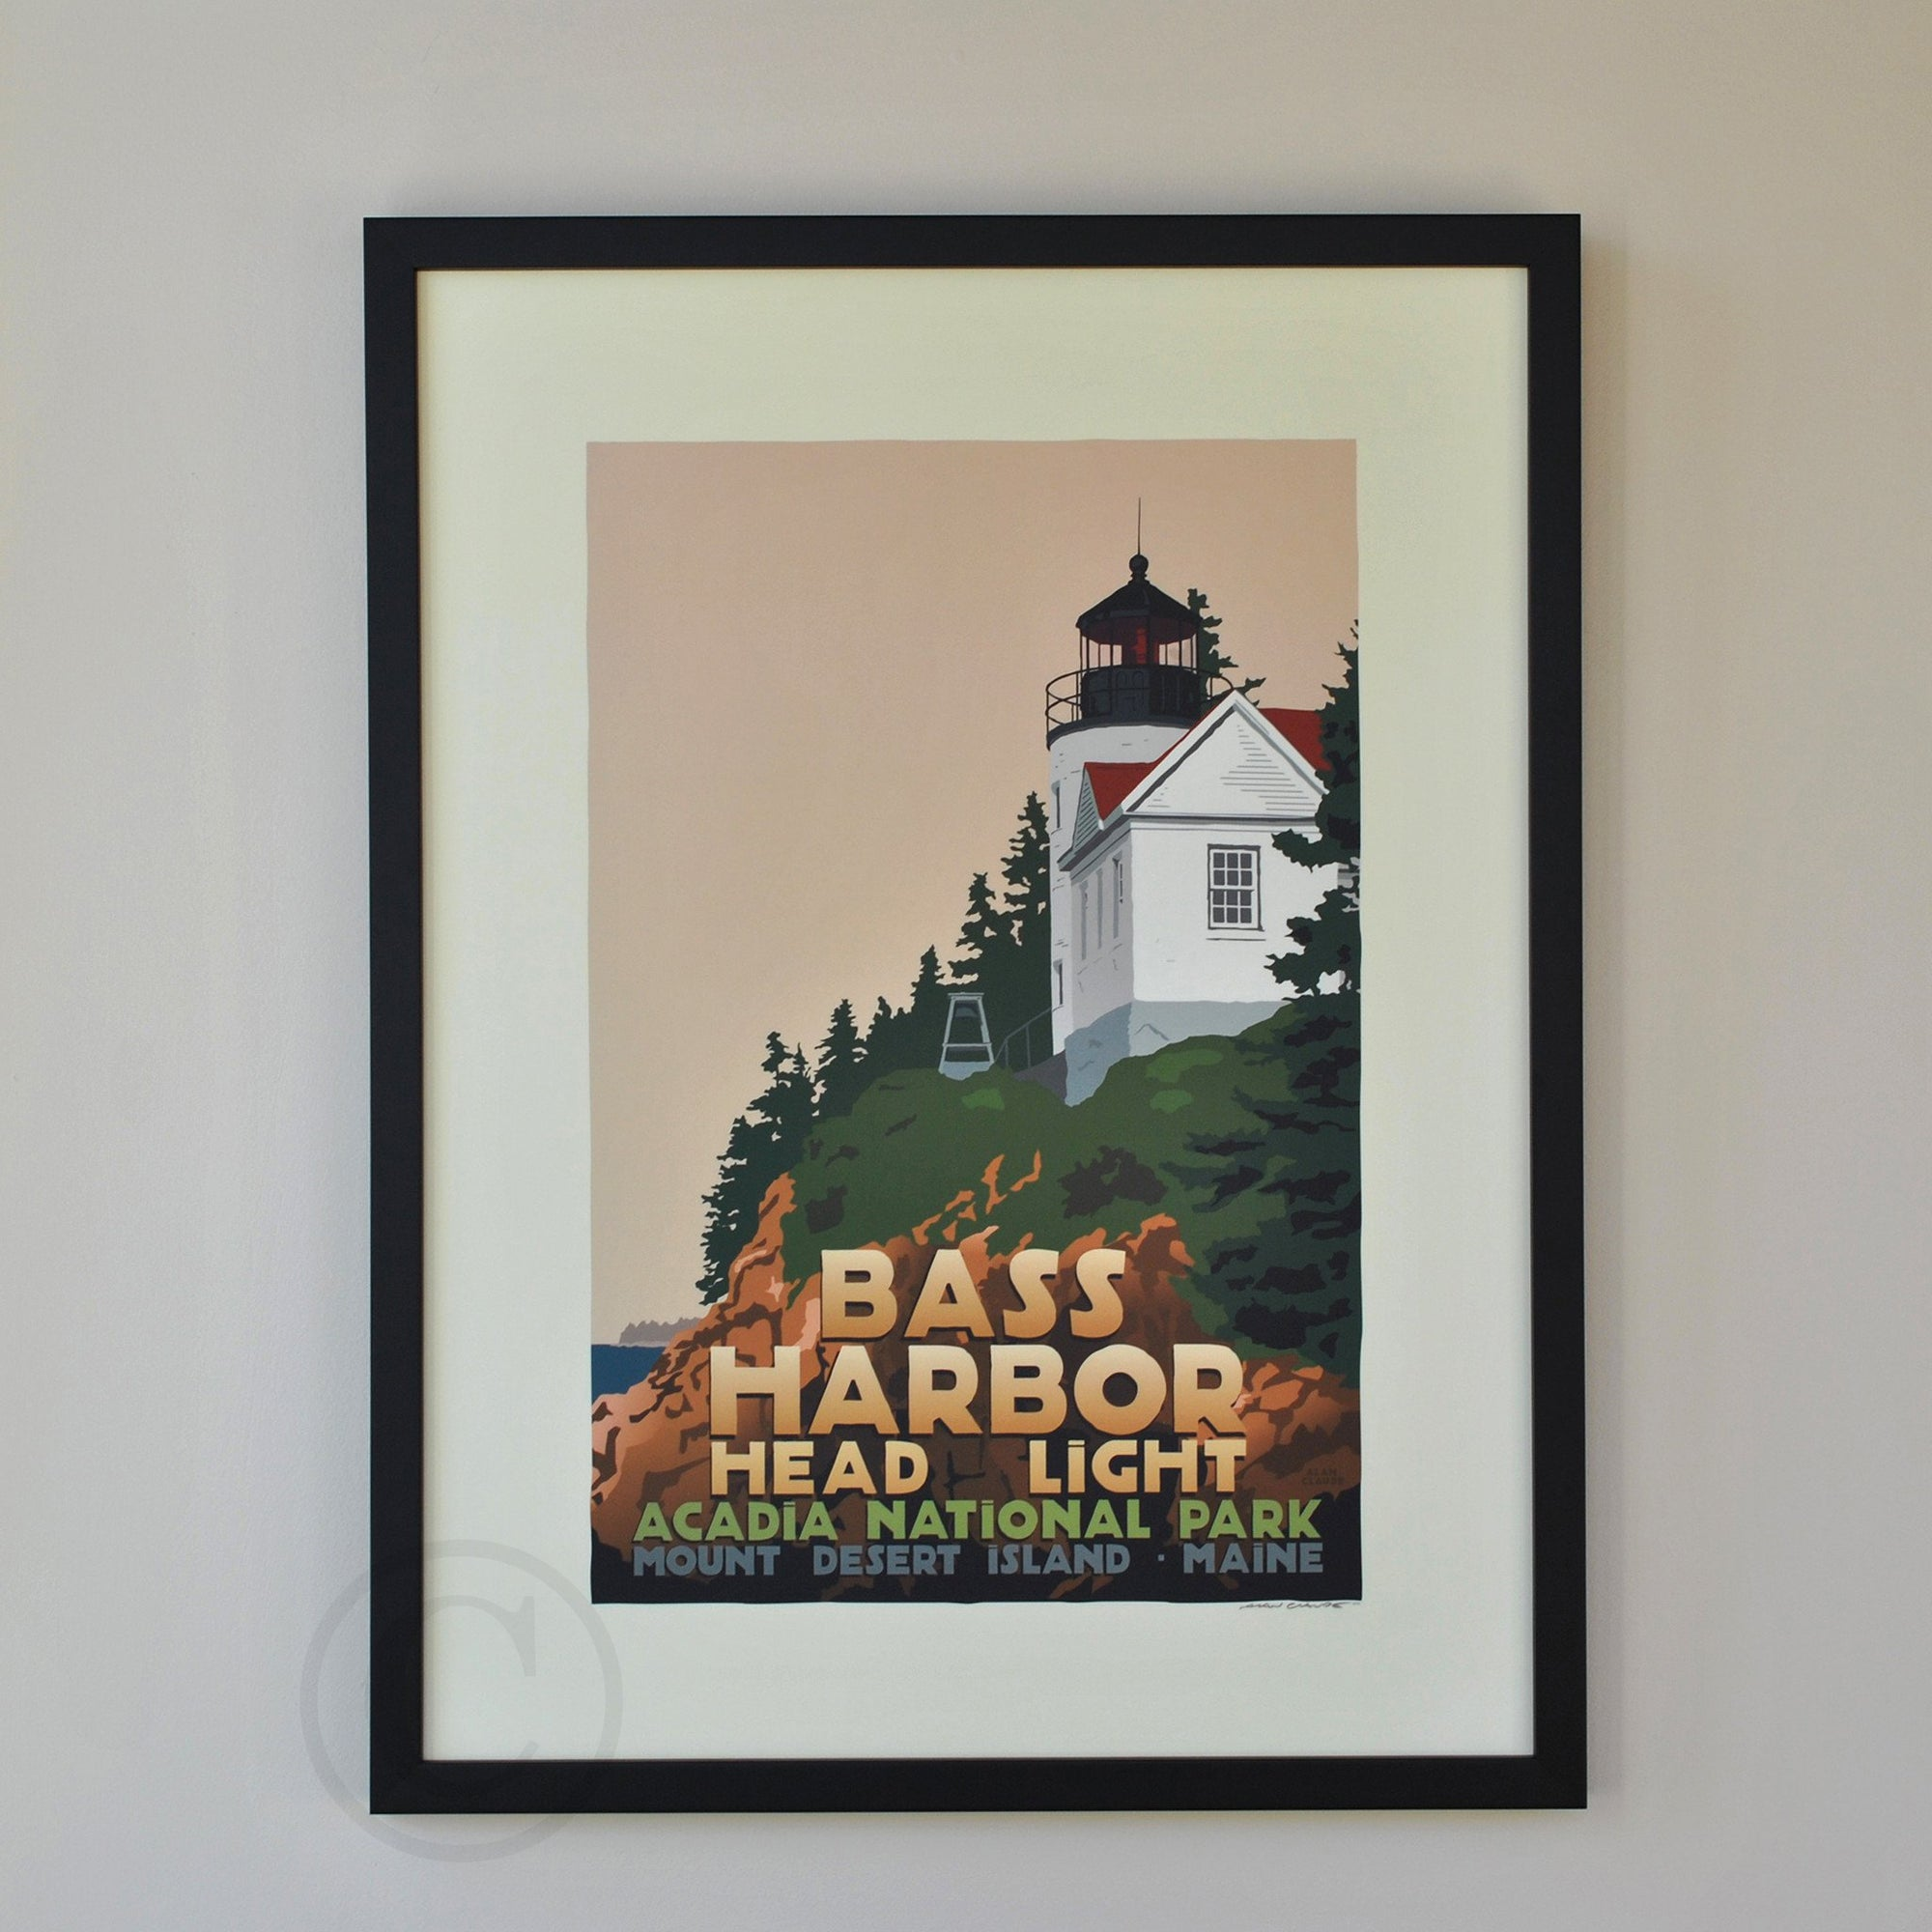 "Bass Harbor Head Light Art Print 18"" x 24"" Framed Travel Poster - Maine"